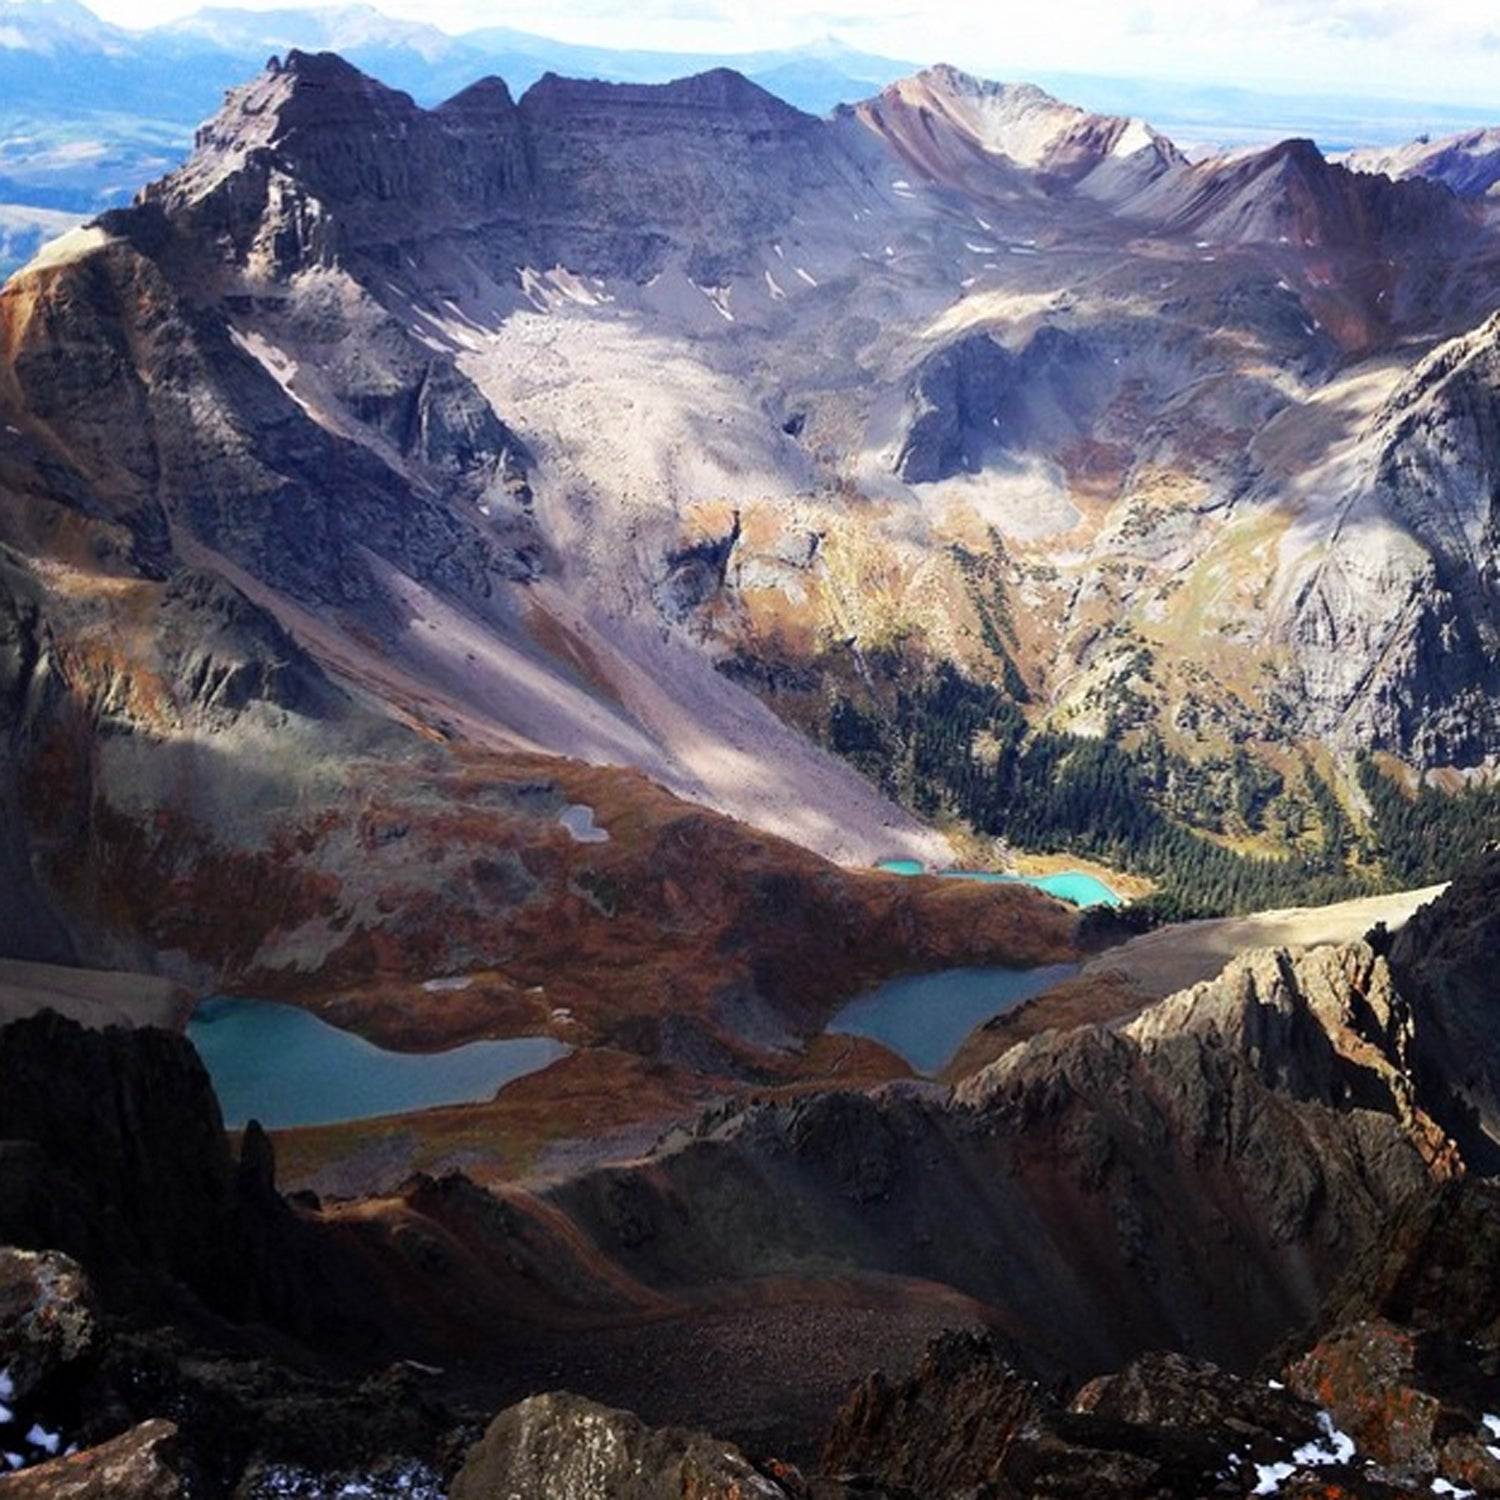 Breathtaking view from one of our local 14er's, Mt. Sneffels #BestTowns2015 #Telluride #Colorado